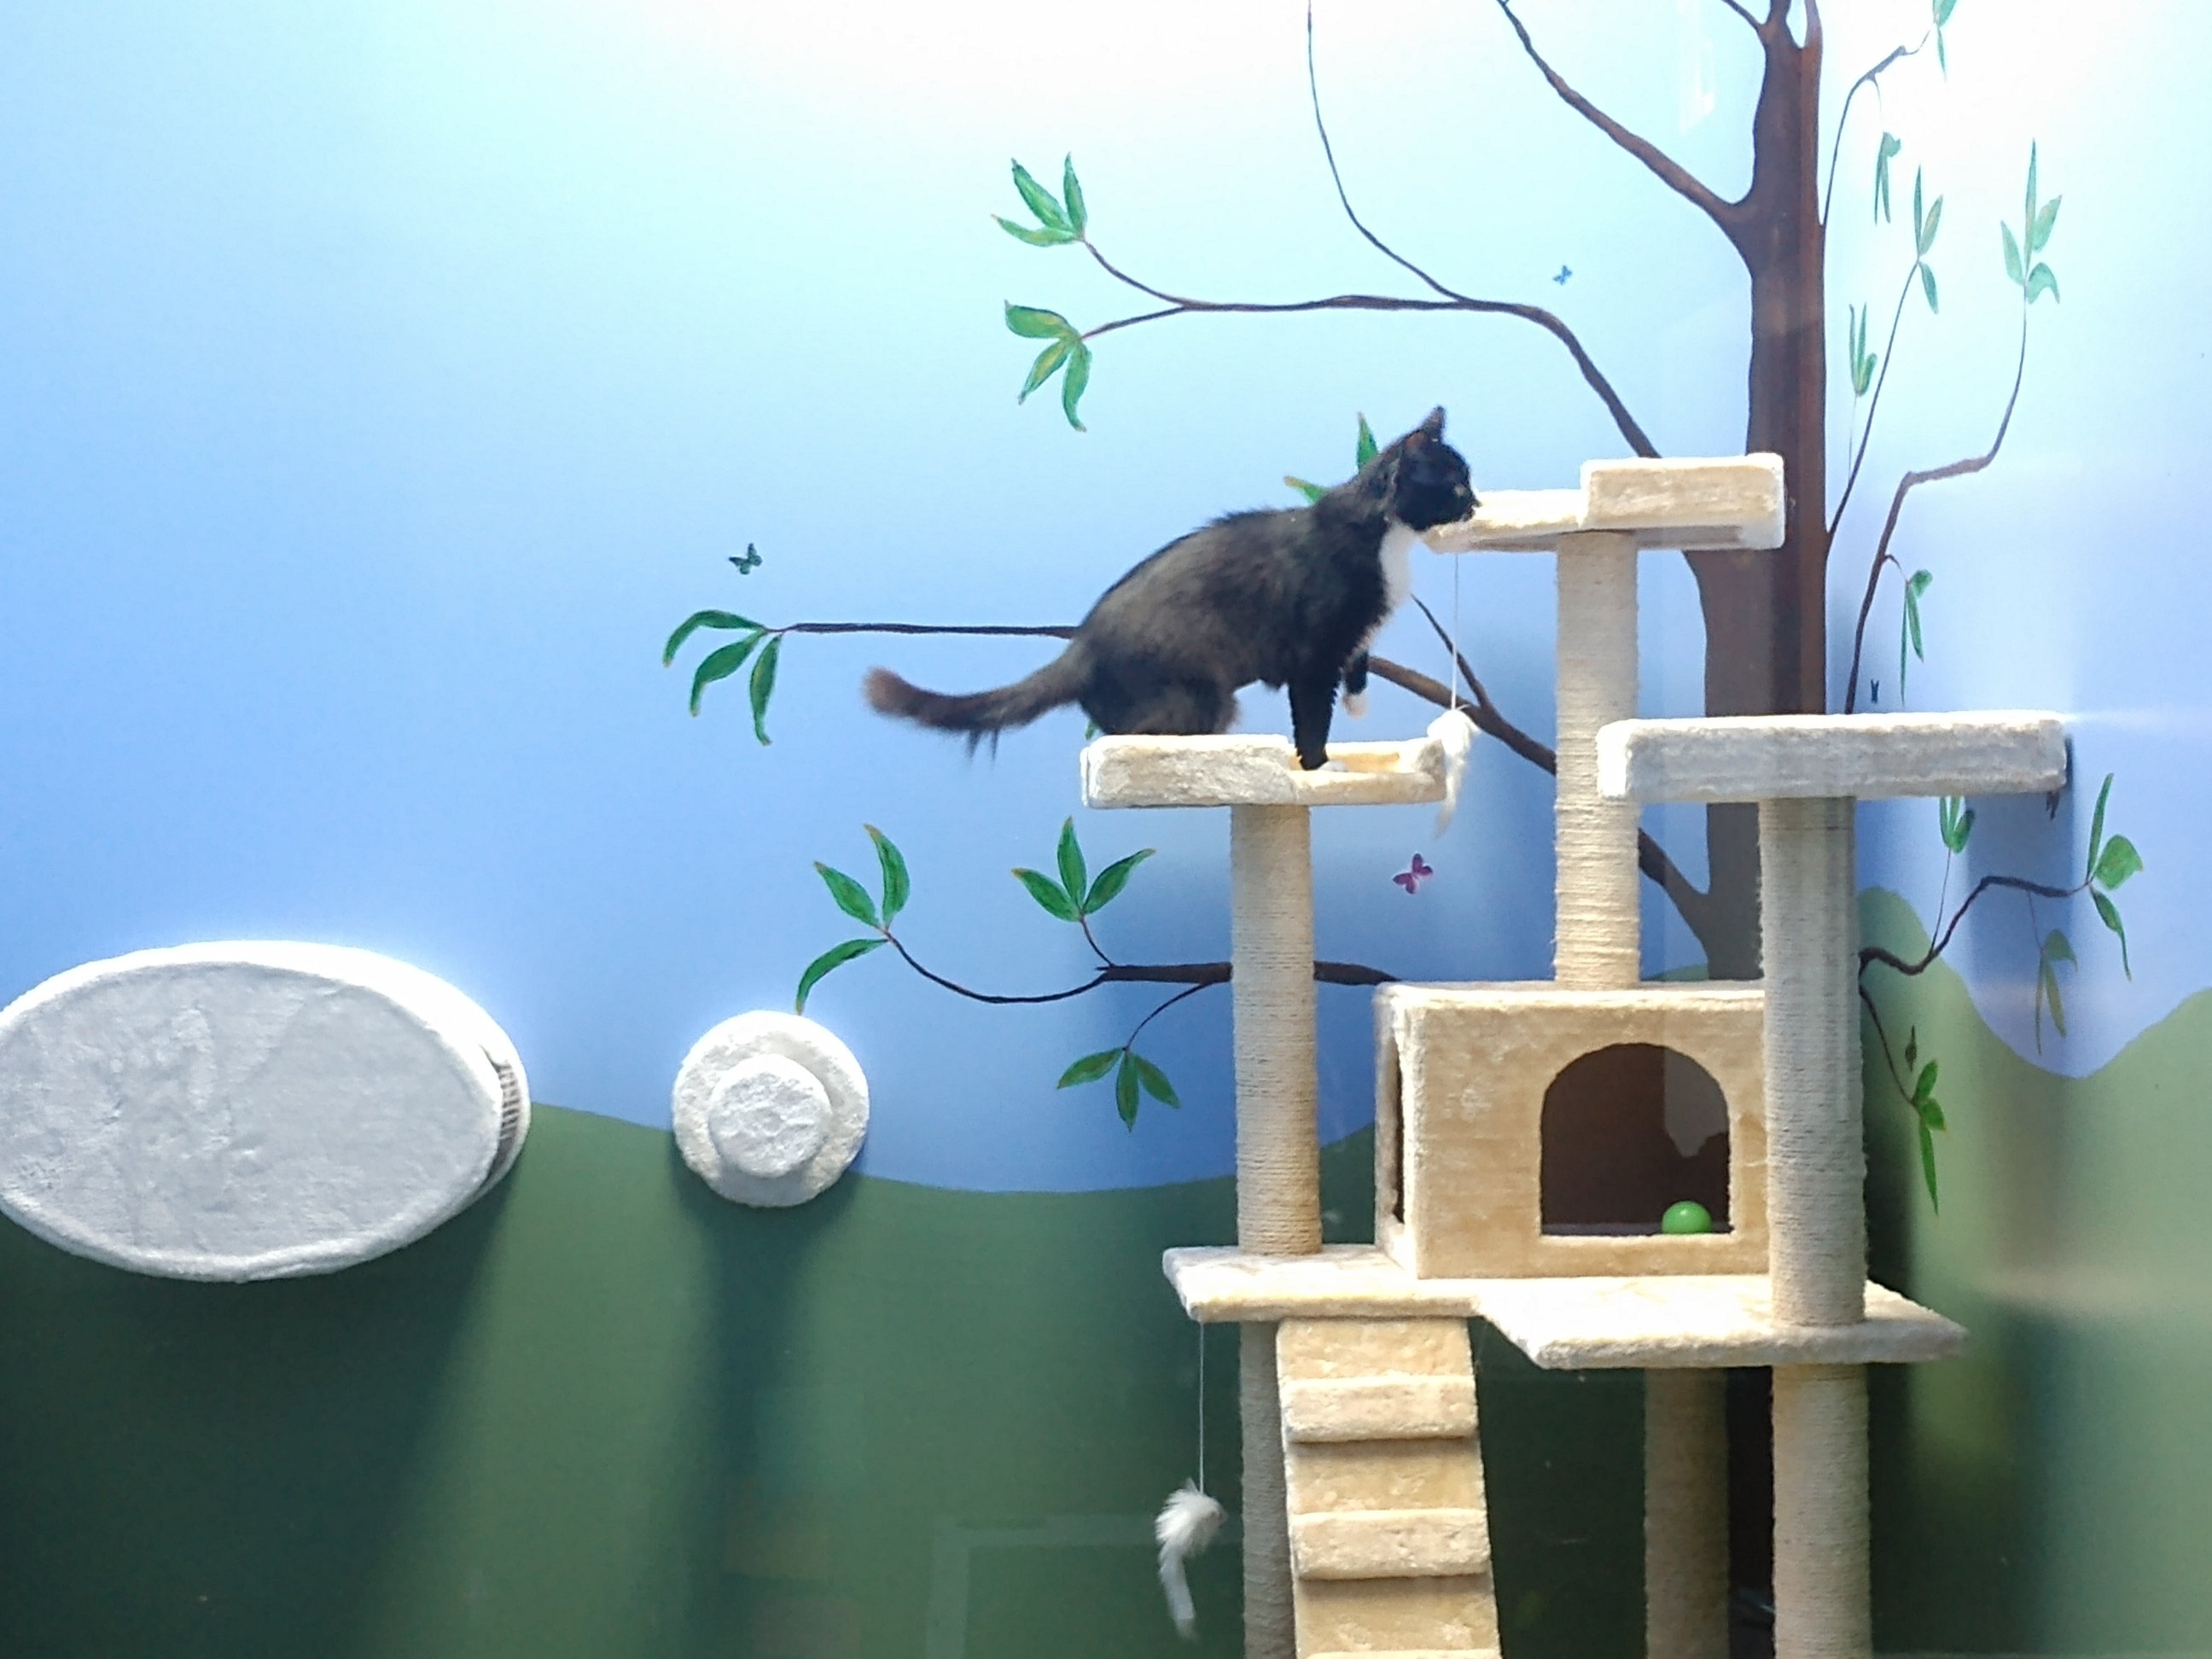 A black and white cat playing in the cat play room